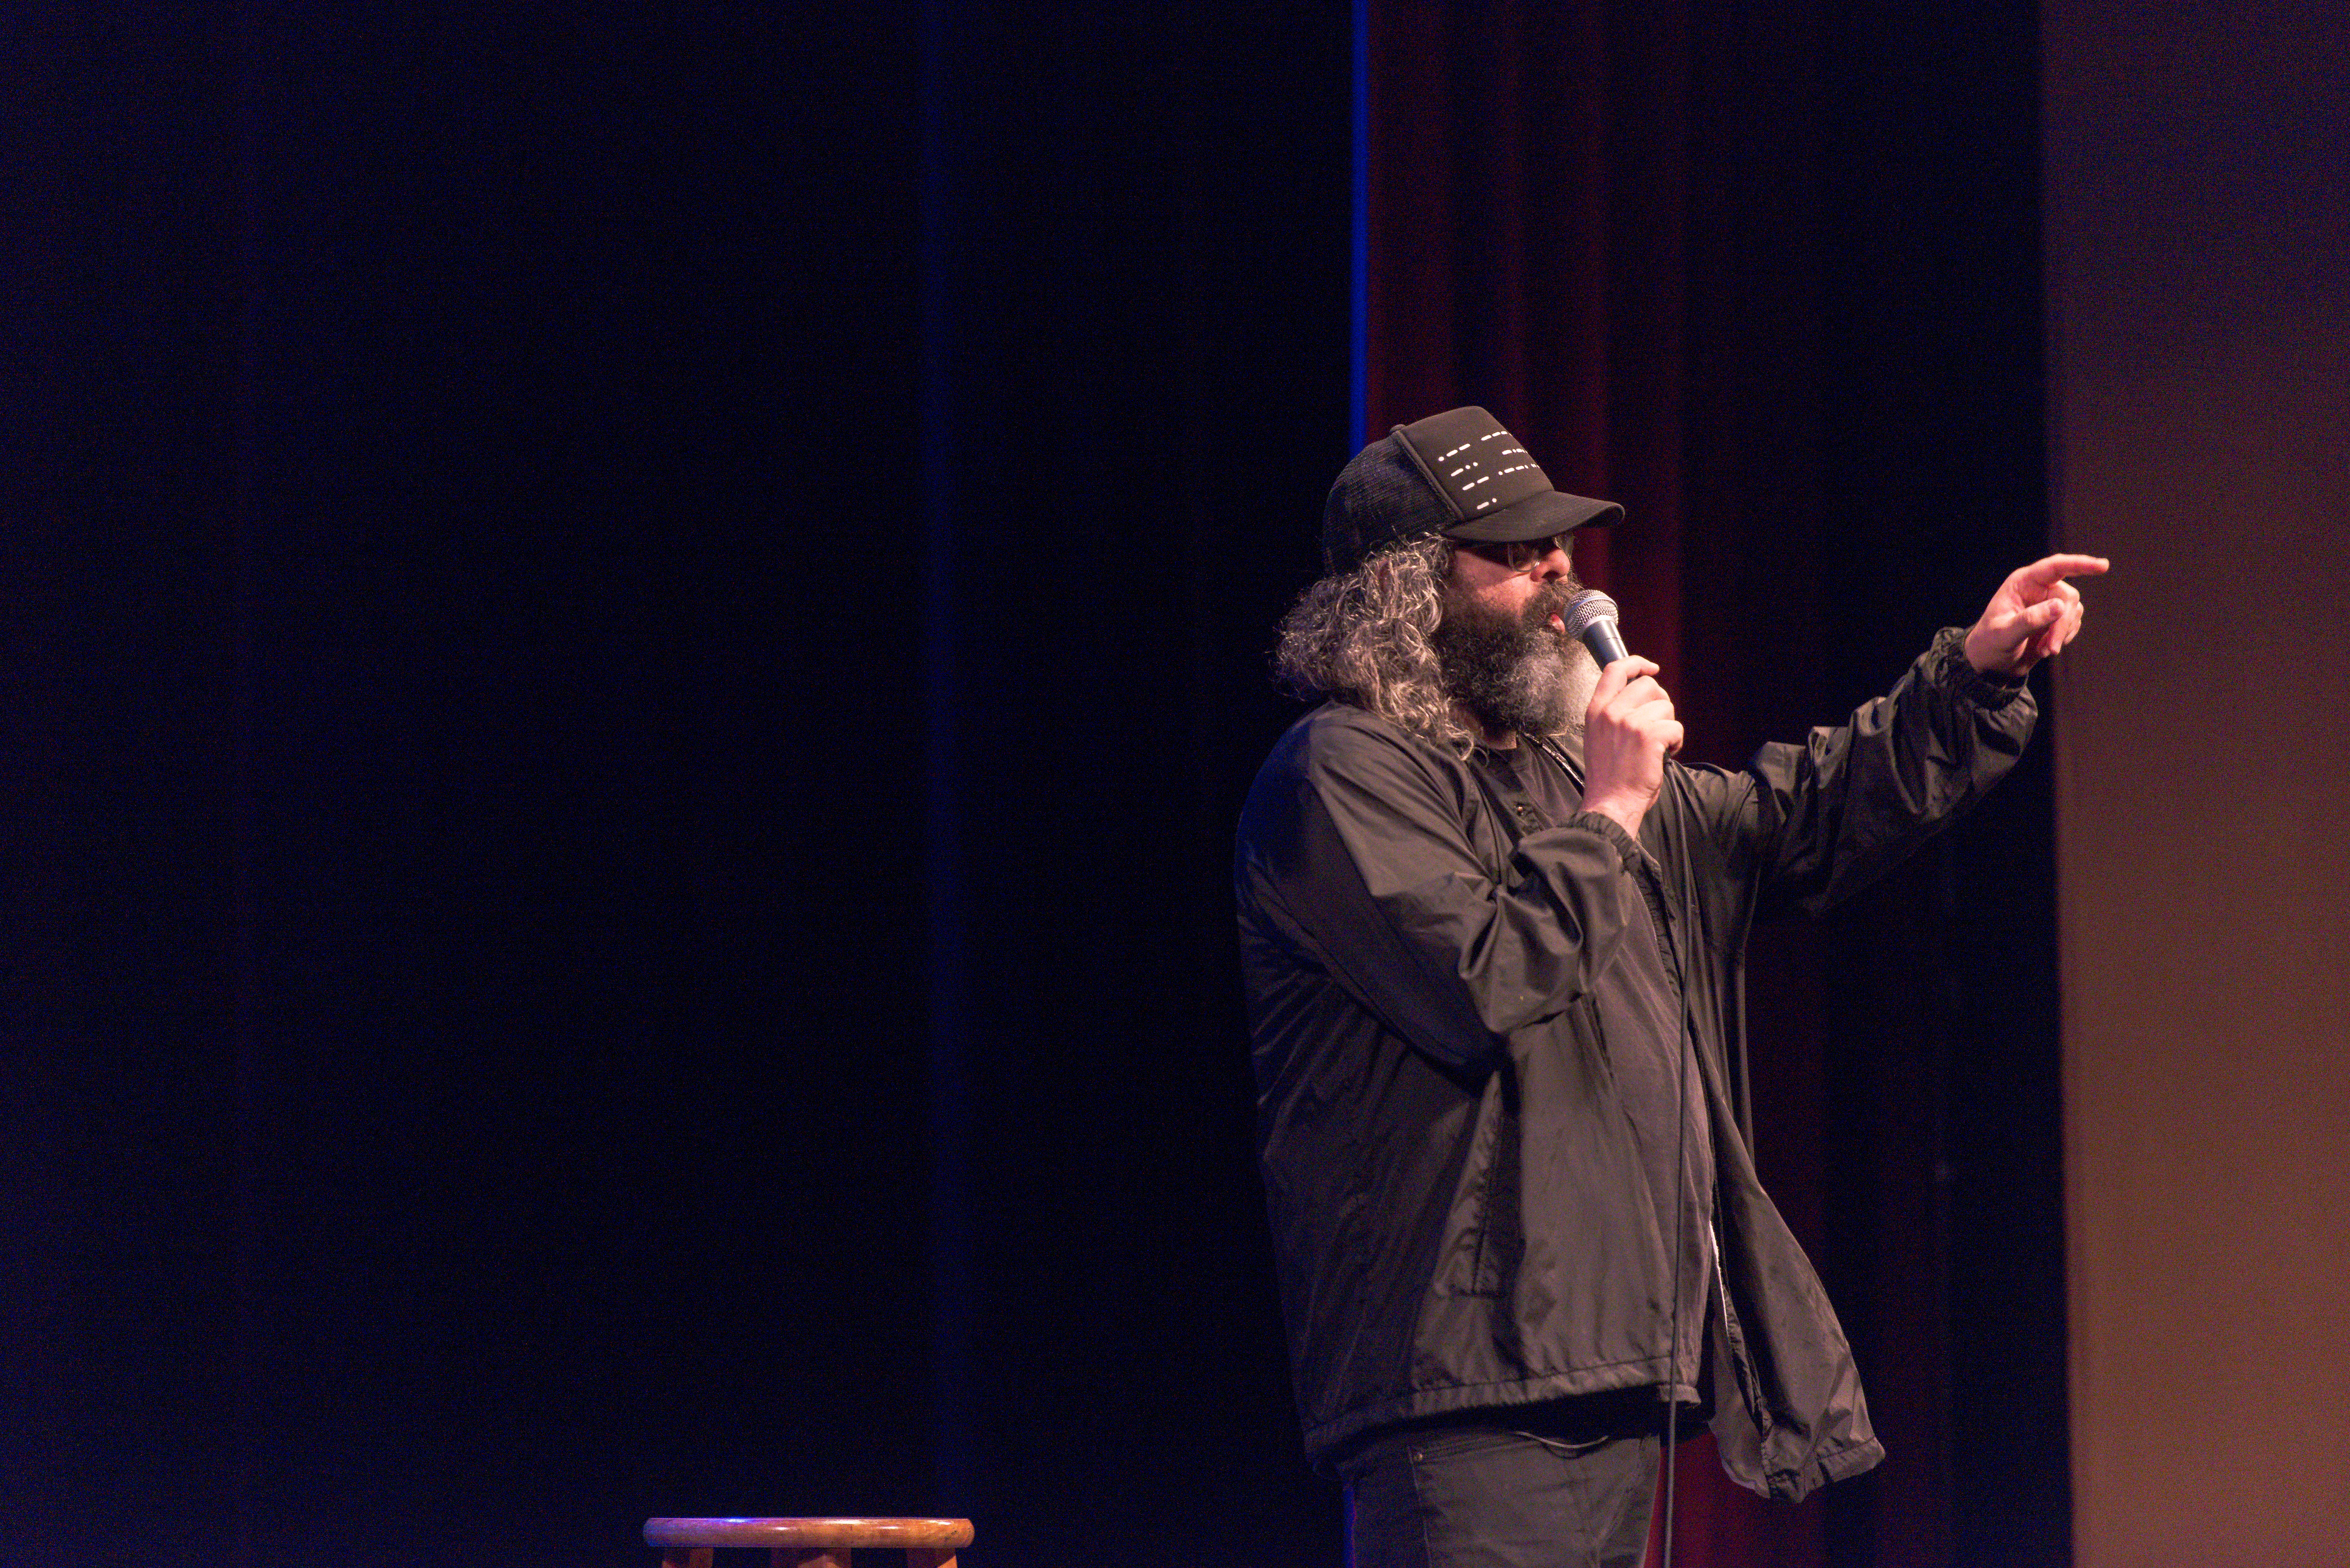 Judah Friedlander @ LCF18